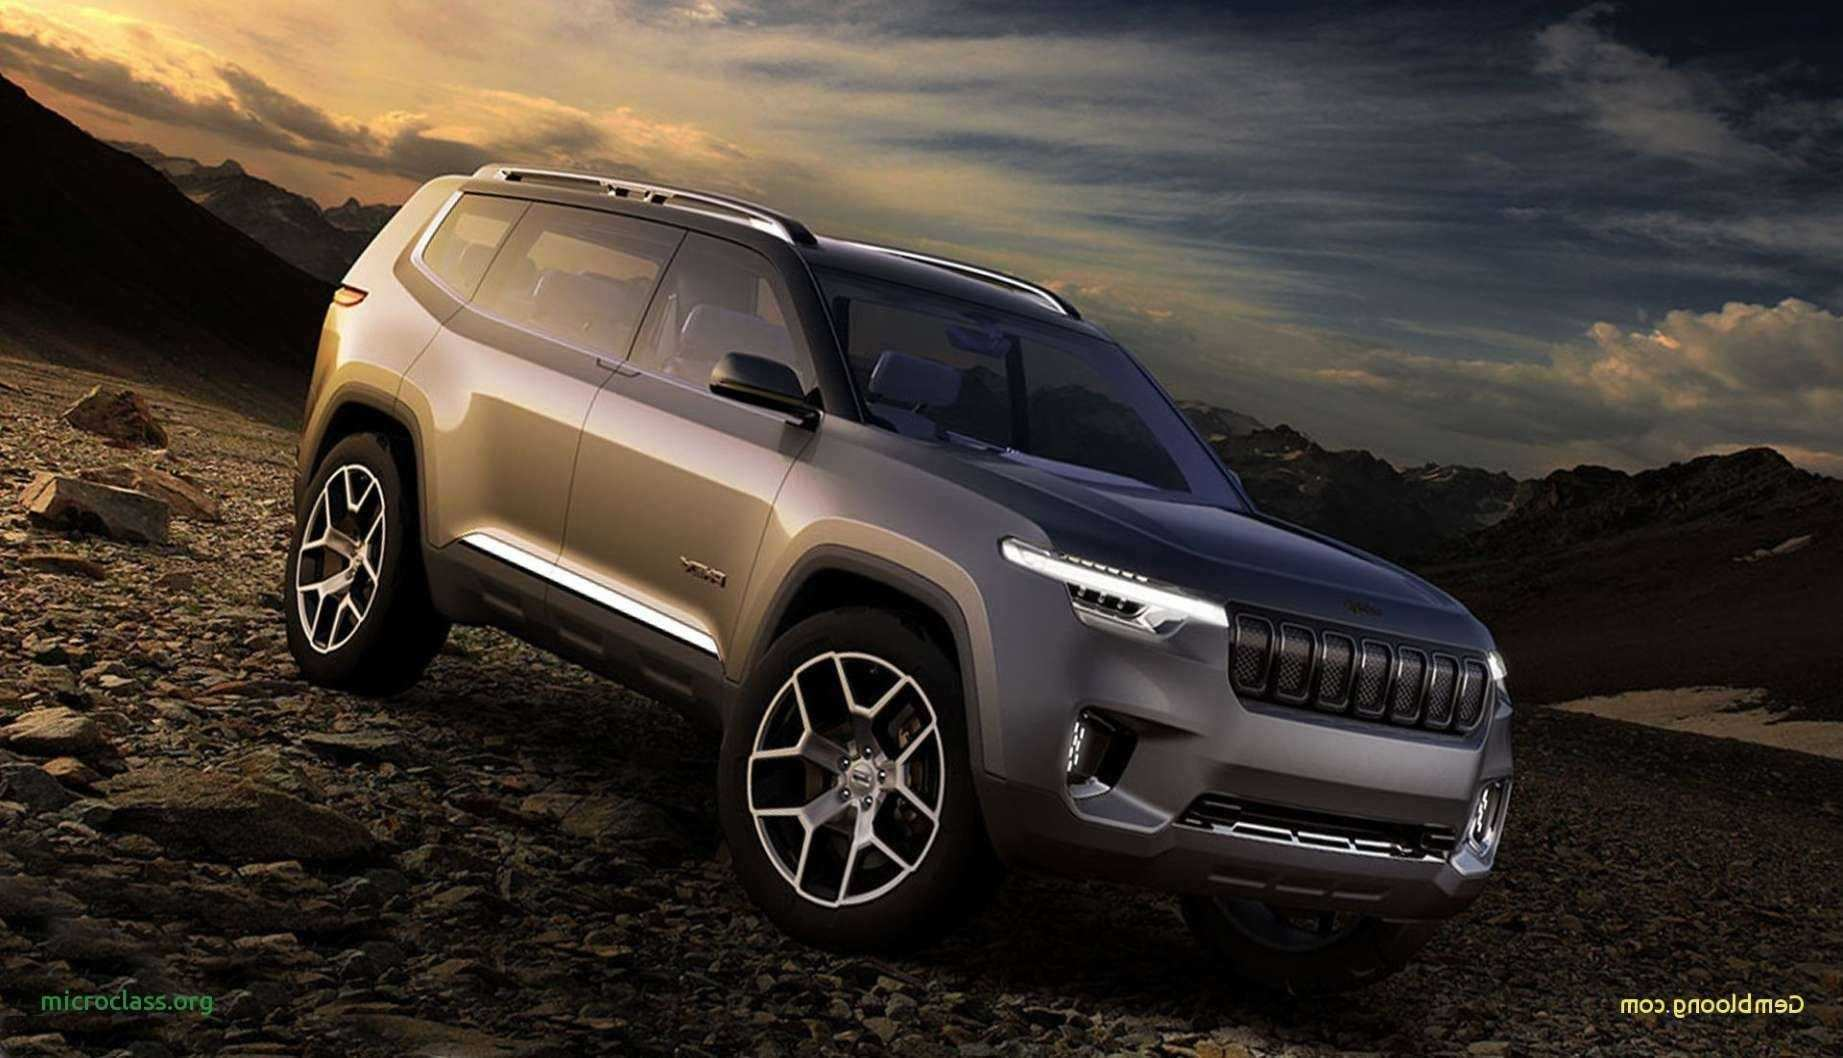 70 Gallery of 2020 Jeep Cherokee Owners Manual Price and Review by 2020 Jeep Cherokee Owners Manual